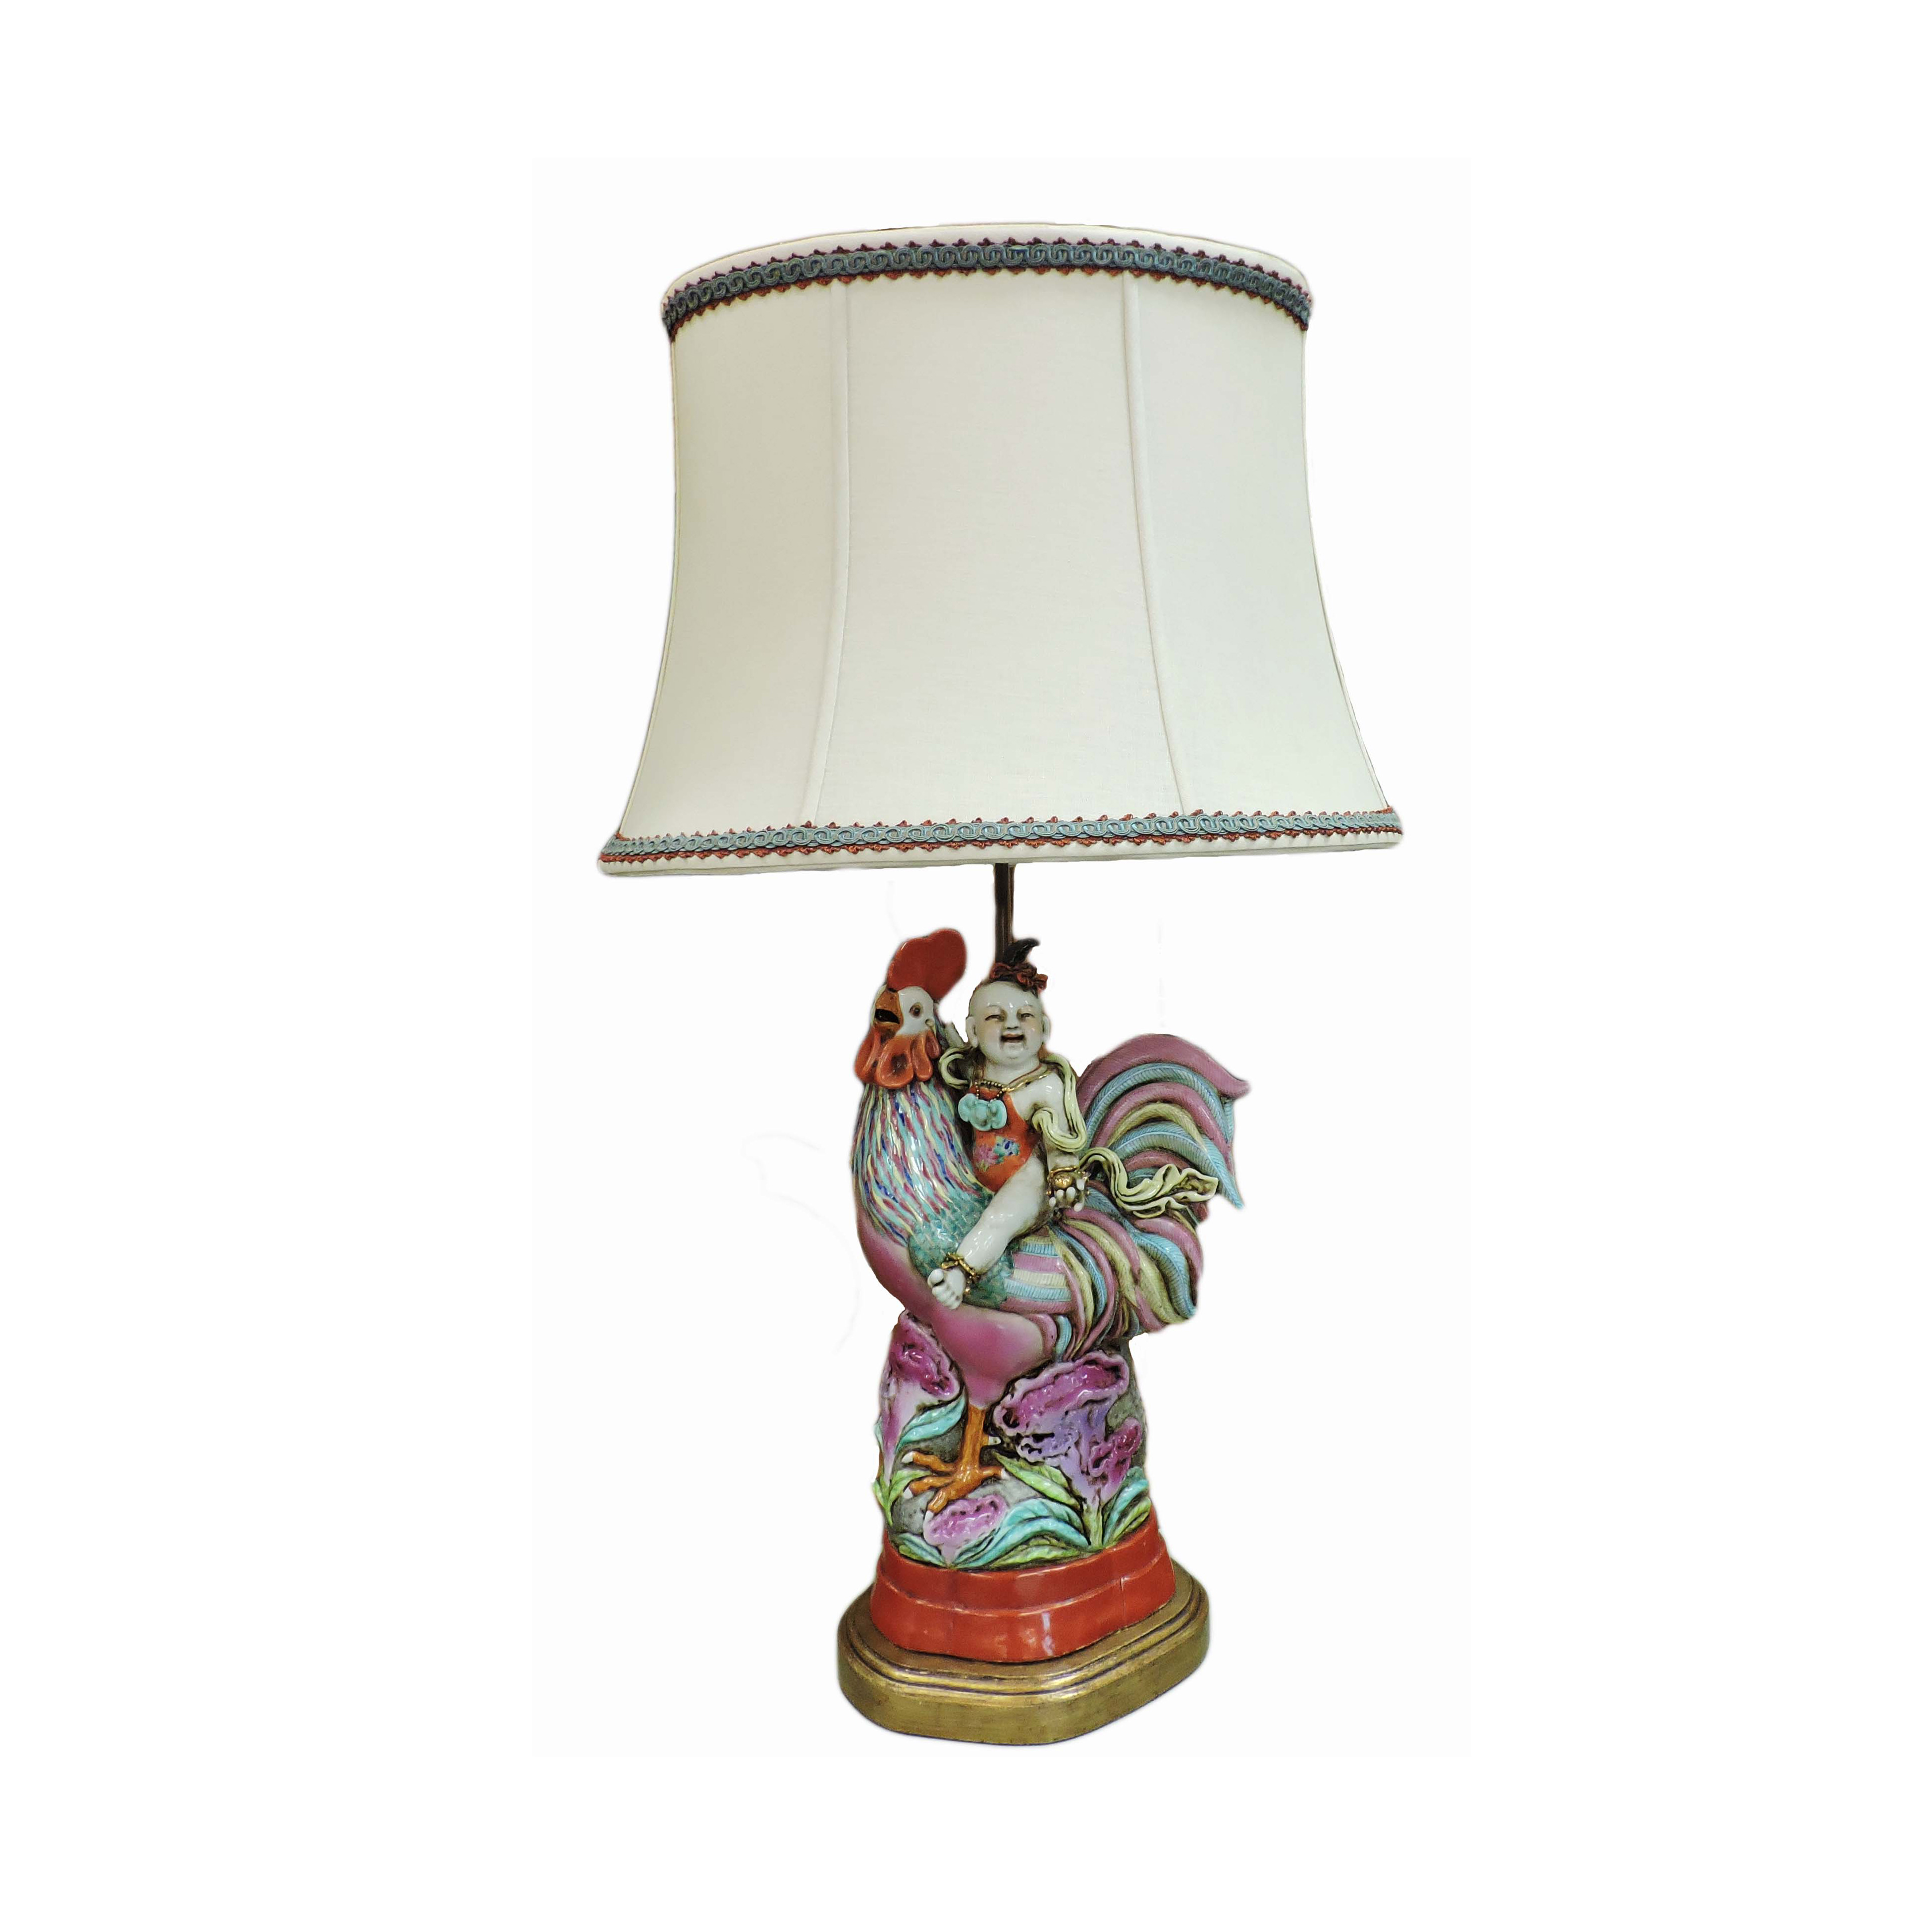 Antique Lamps Archives - Beth Claybourn Interiors